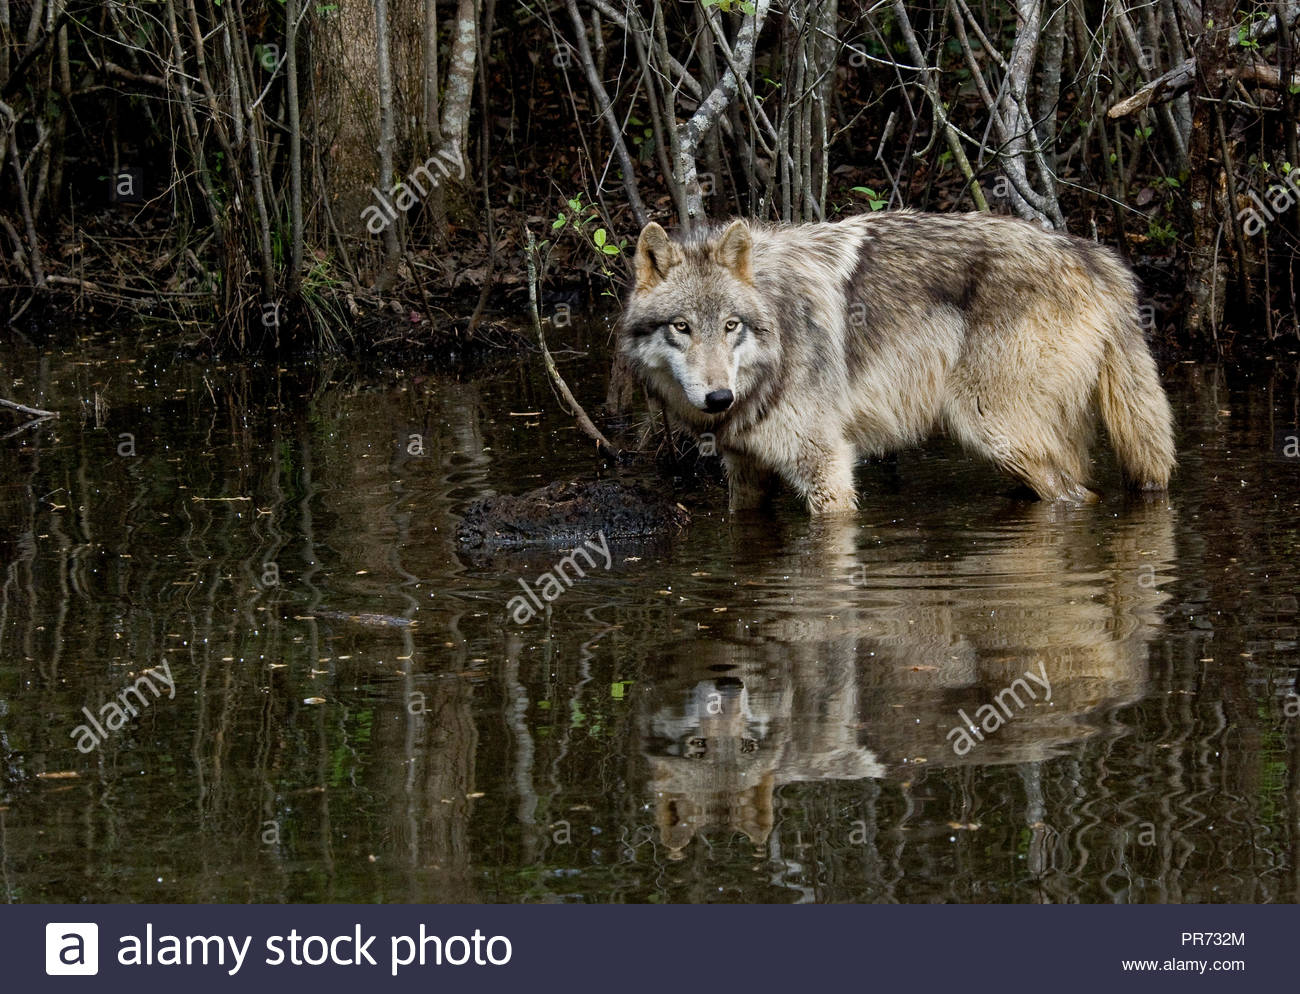 Gray wolf standing in a pond with reflection - Stock Image